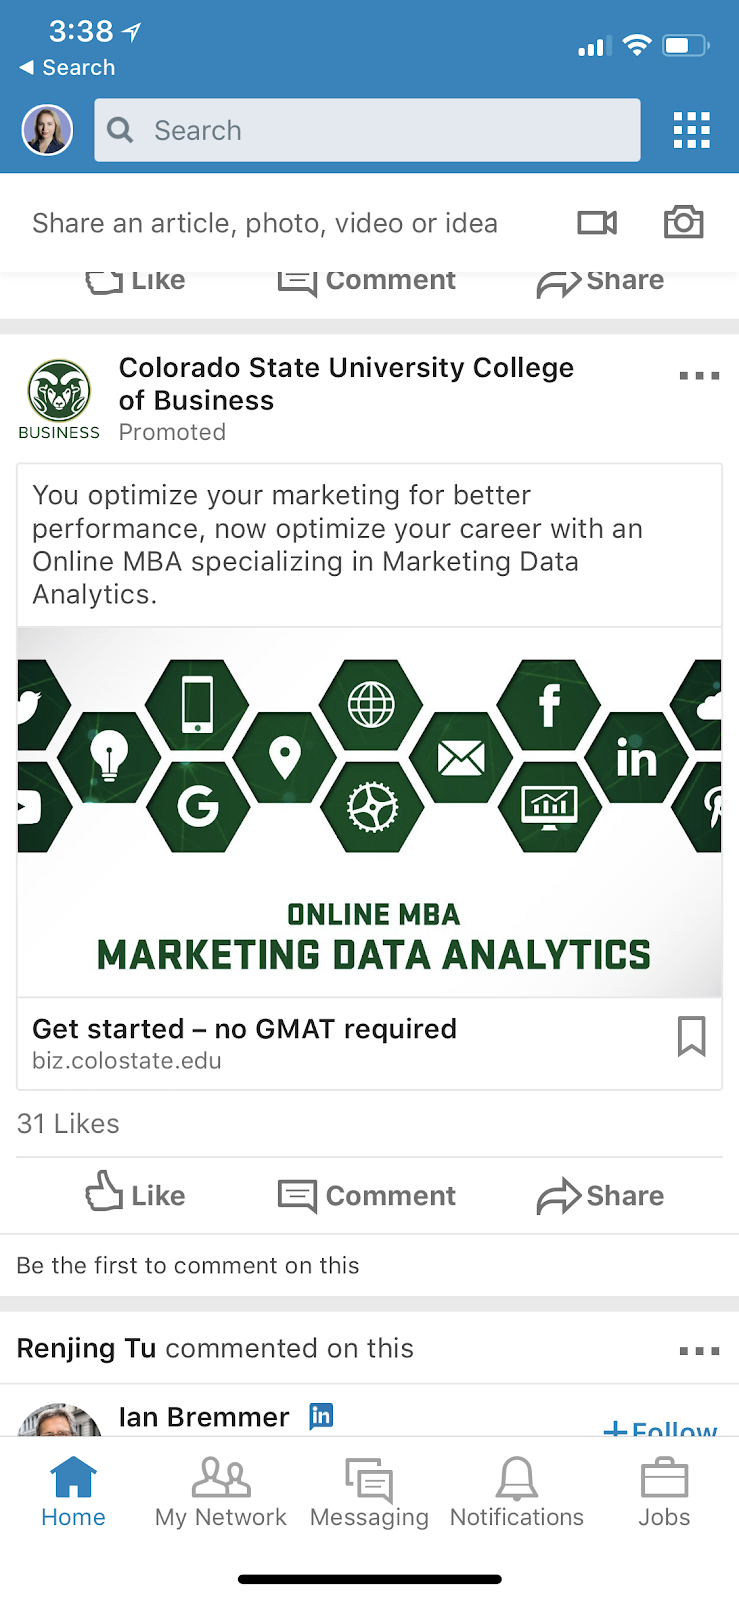 linkedin mobile ads